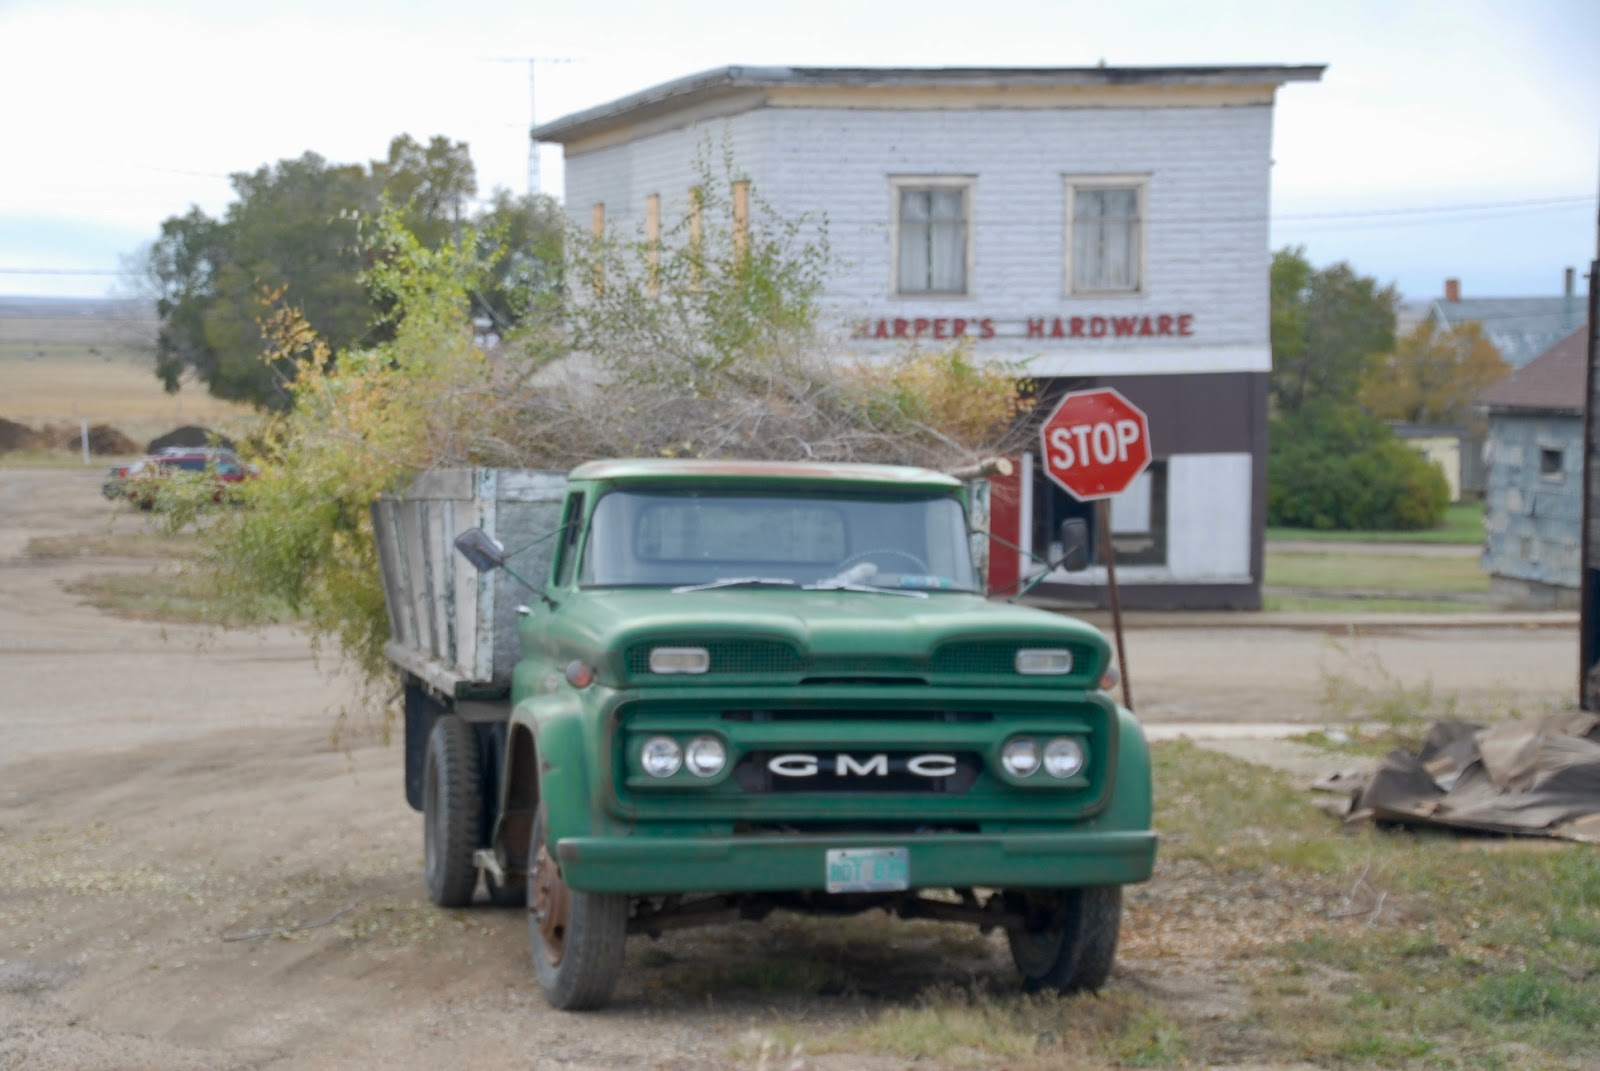 medium resolution of 1962 gmc 5000 from alex emond this green truck was parked in kincaid saskatchewan mid chore impressive front on this machine all business